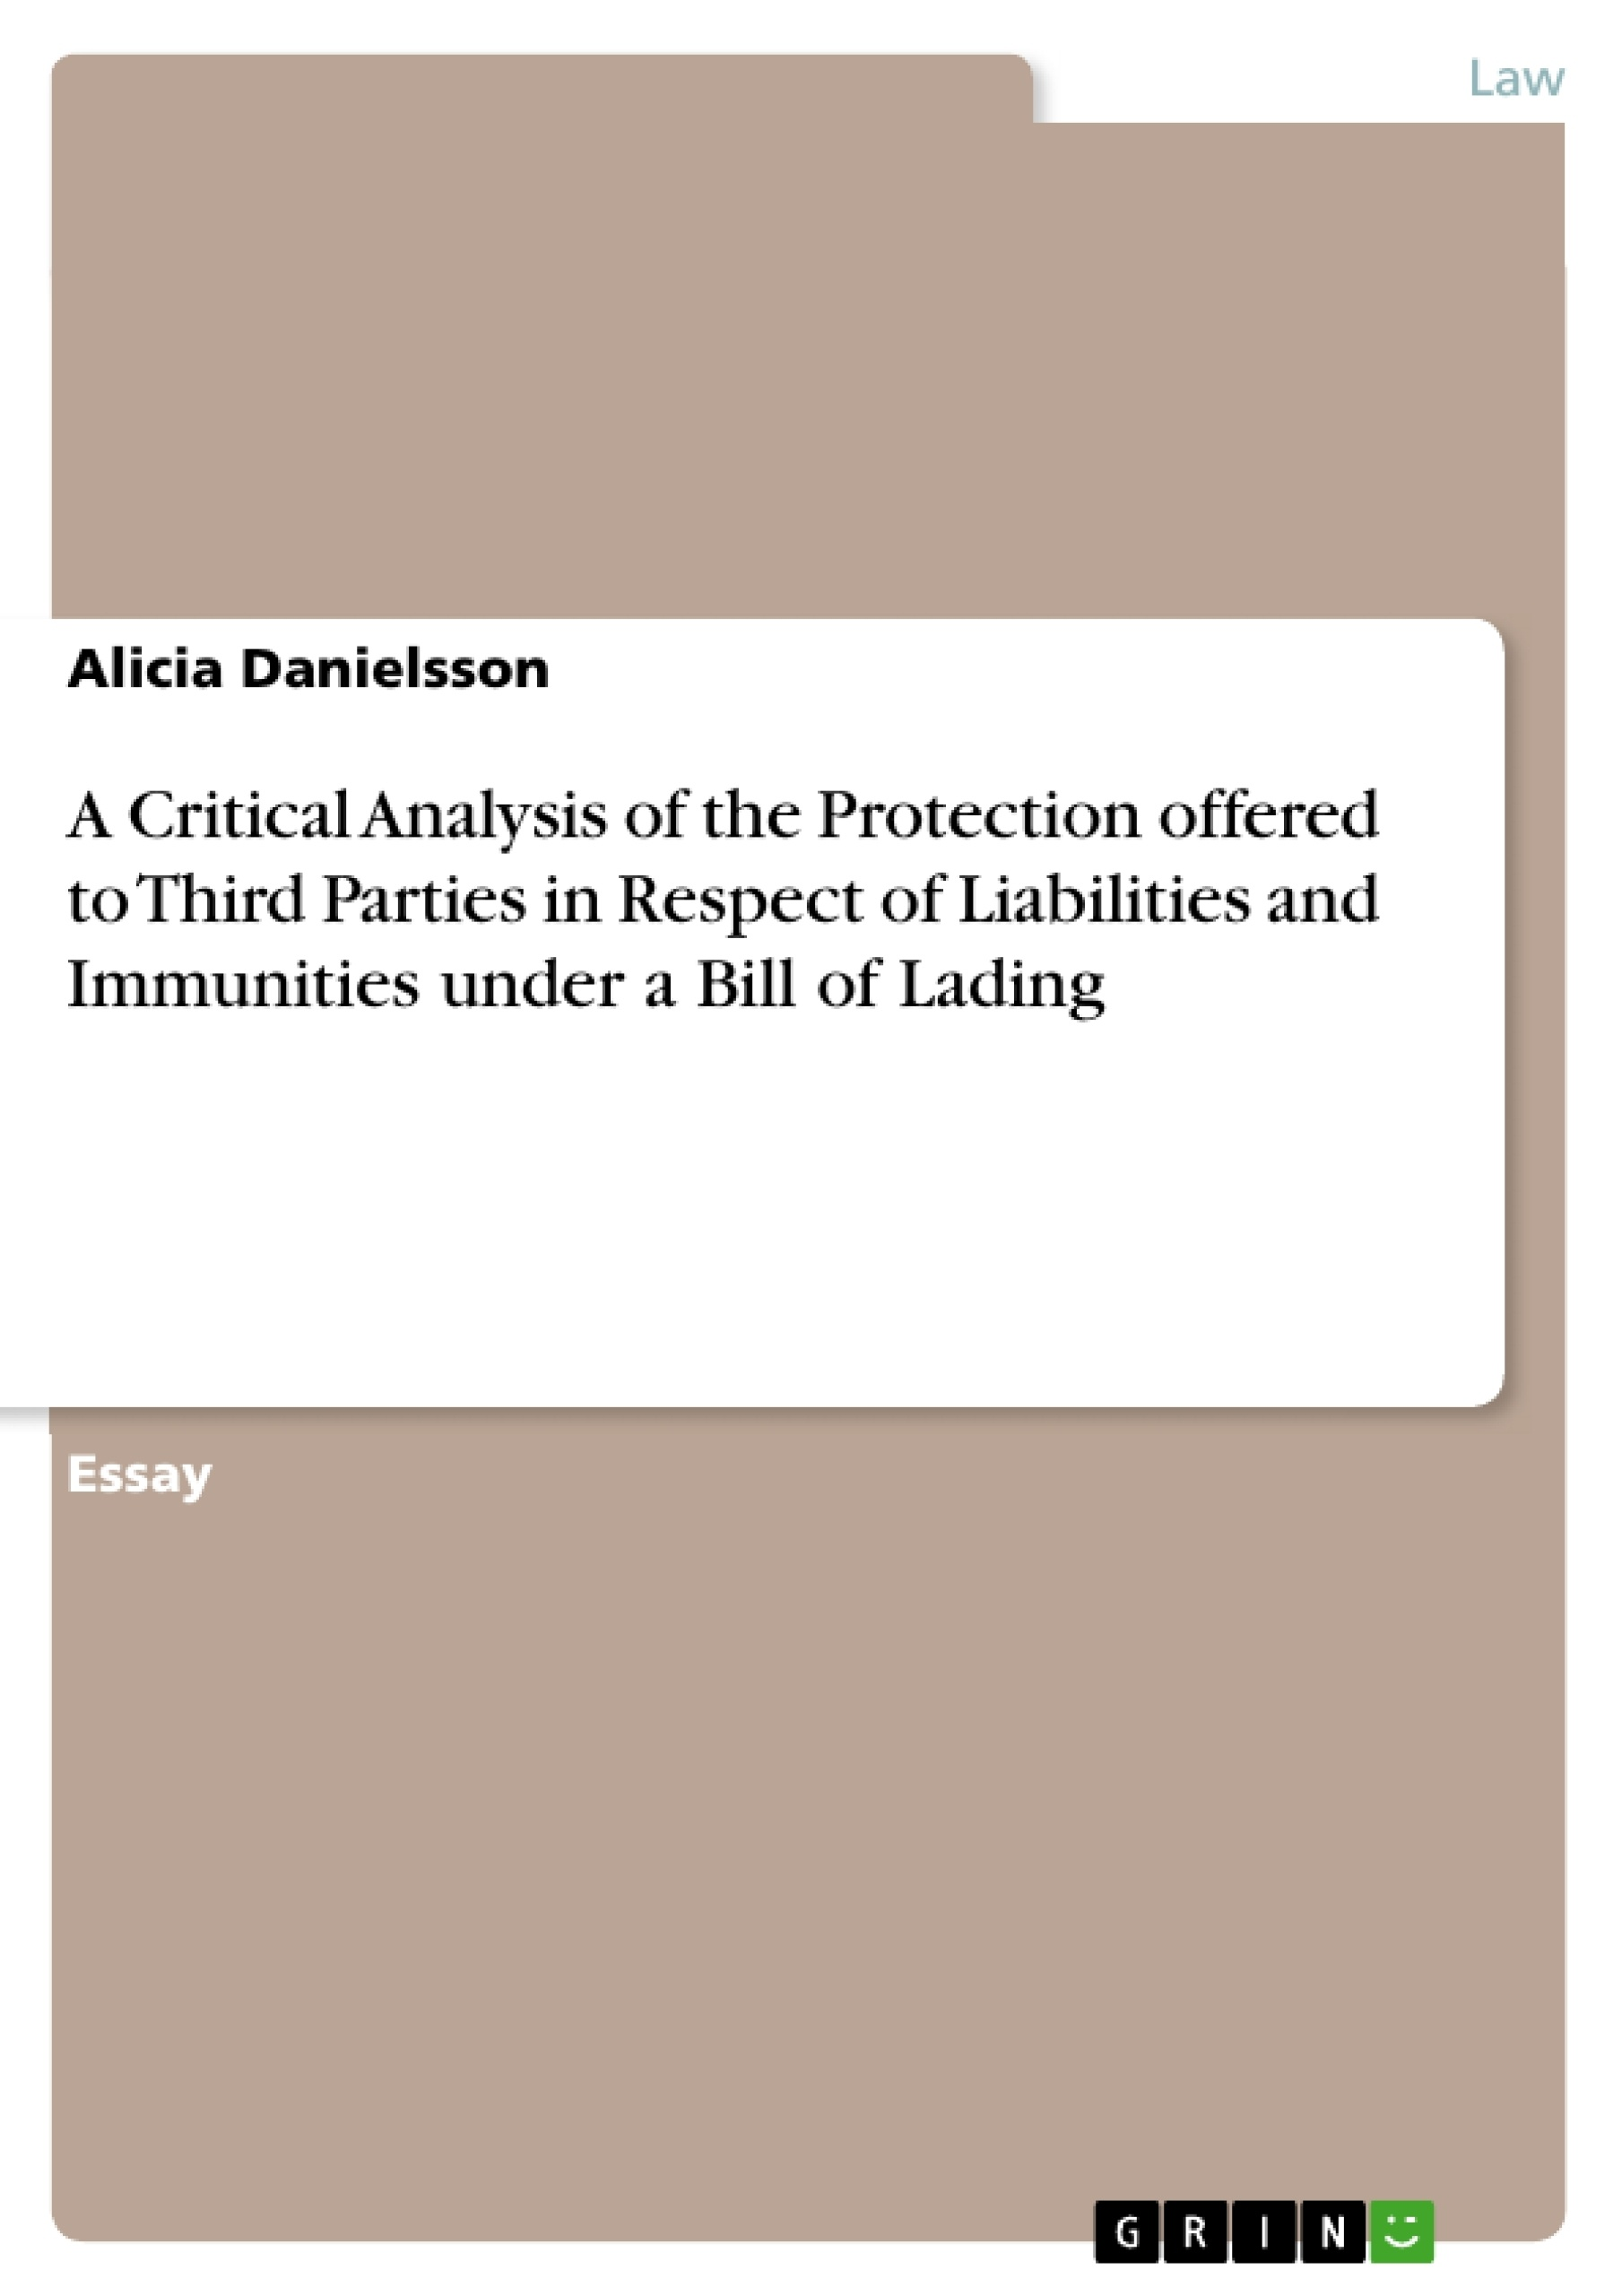 Title: A Critical Analysis of the Protection offered to Third Parties in Respect of Liabilities and Immunities under a Bill of Lading